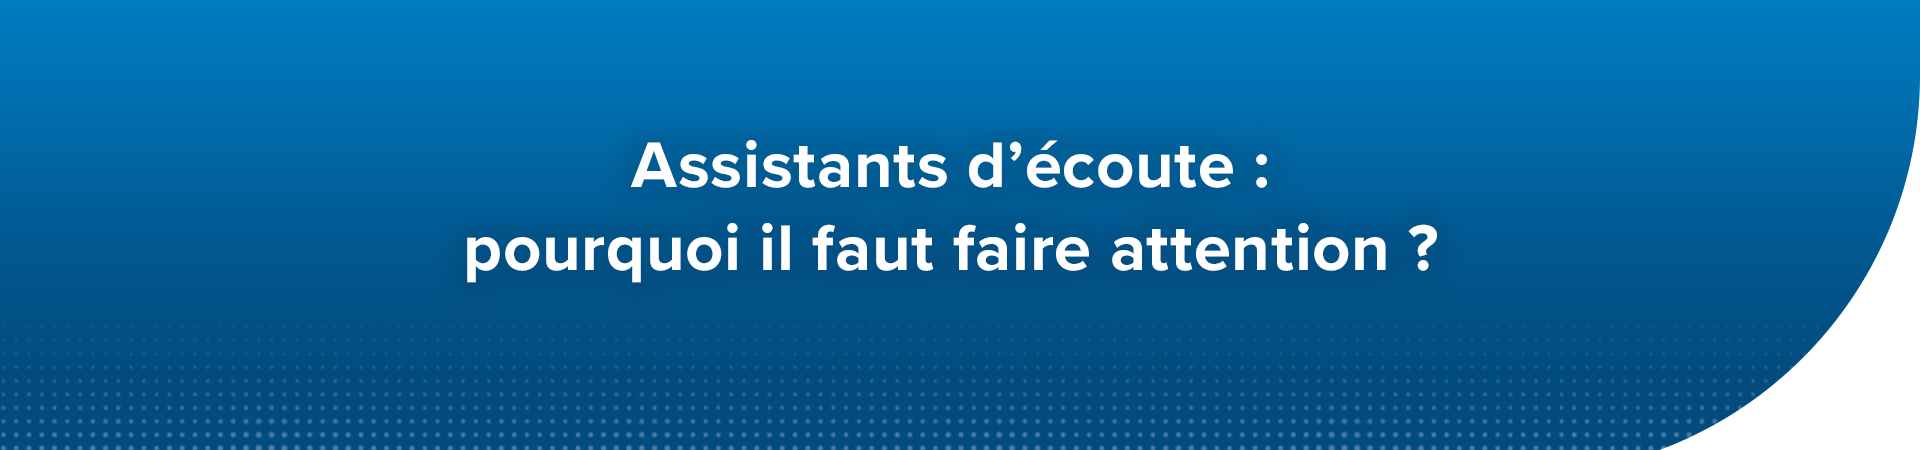 Faire attention aux assistants d'écoute